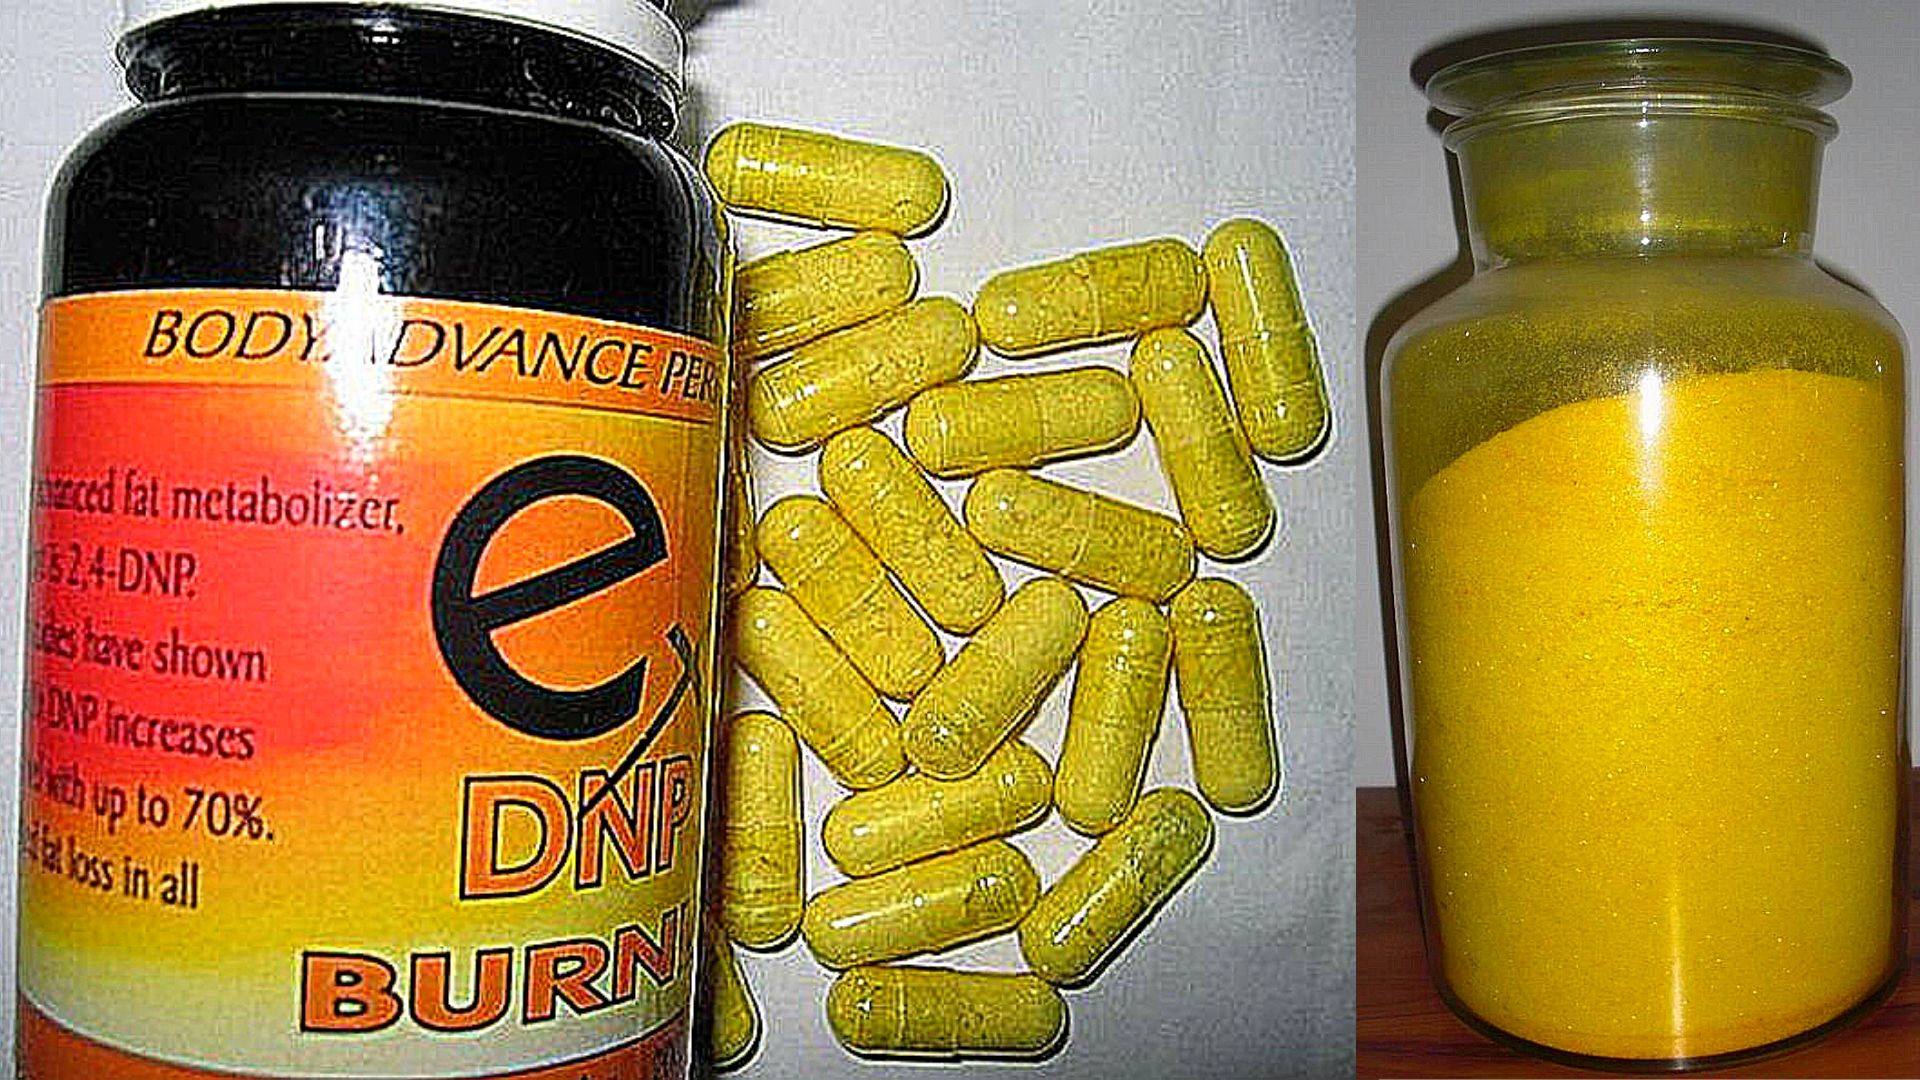 DNP Capsules and DNP raw powder